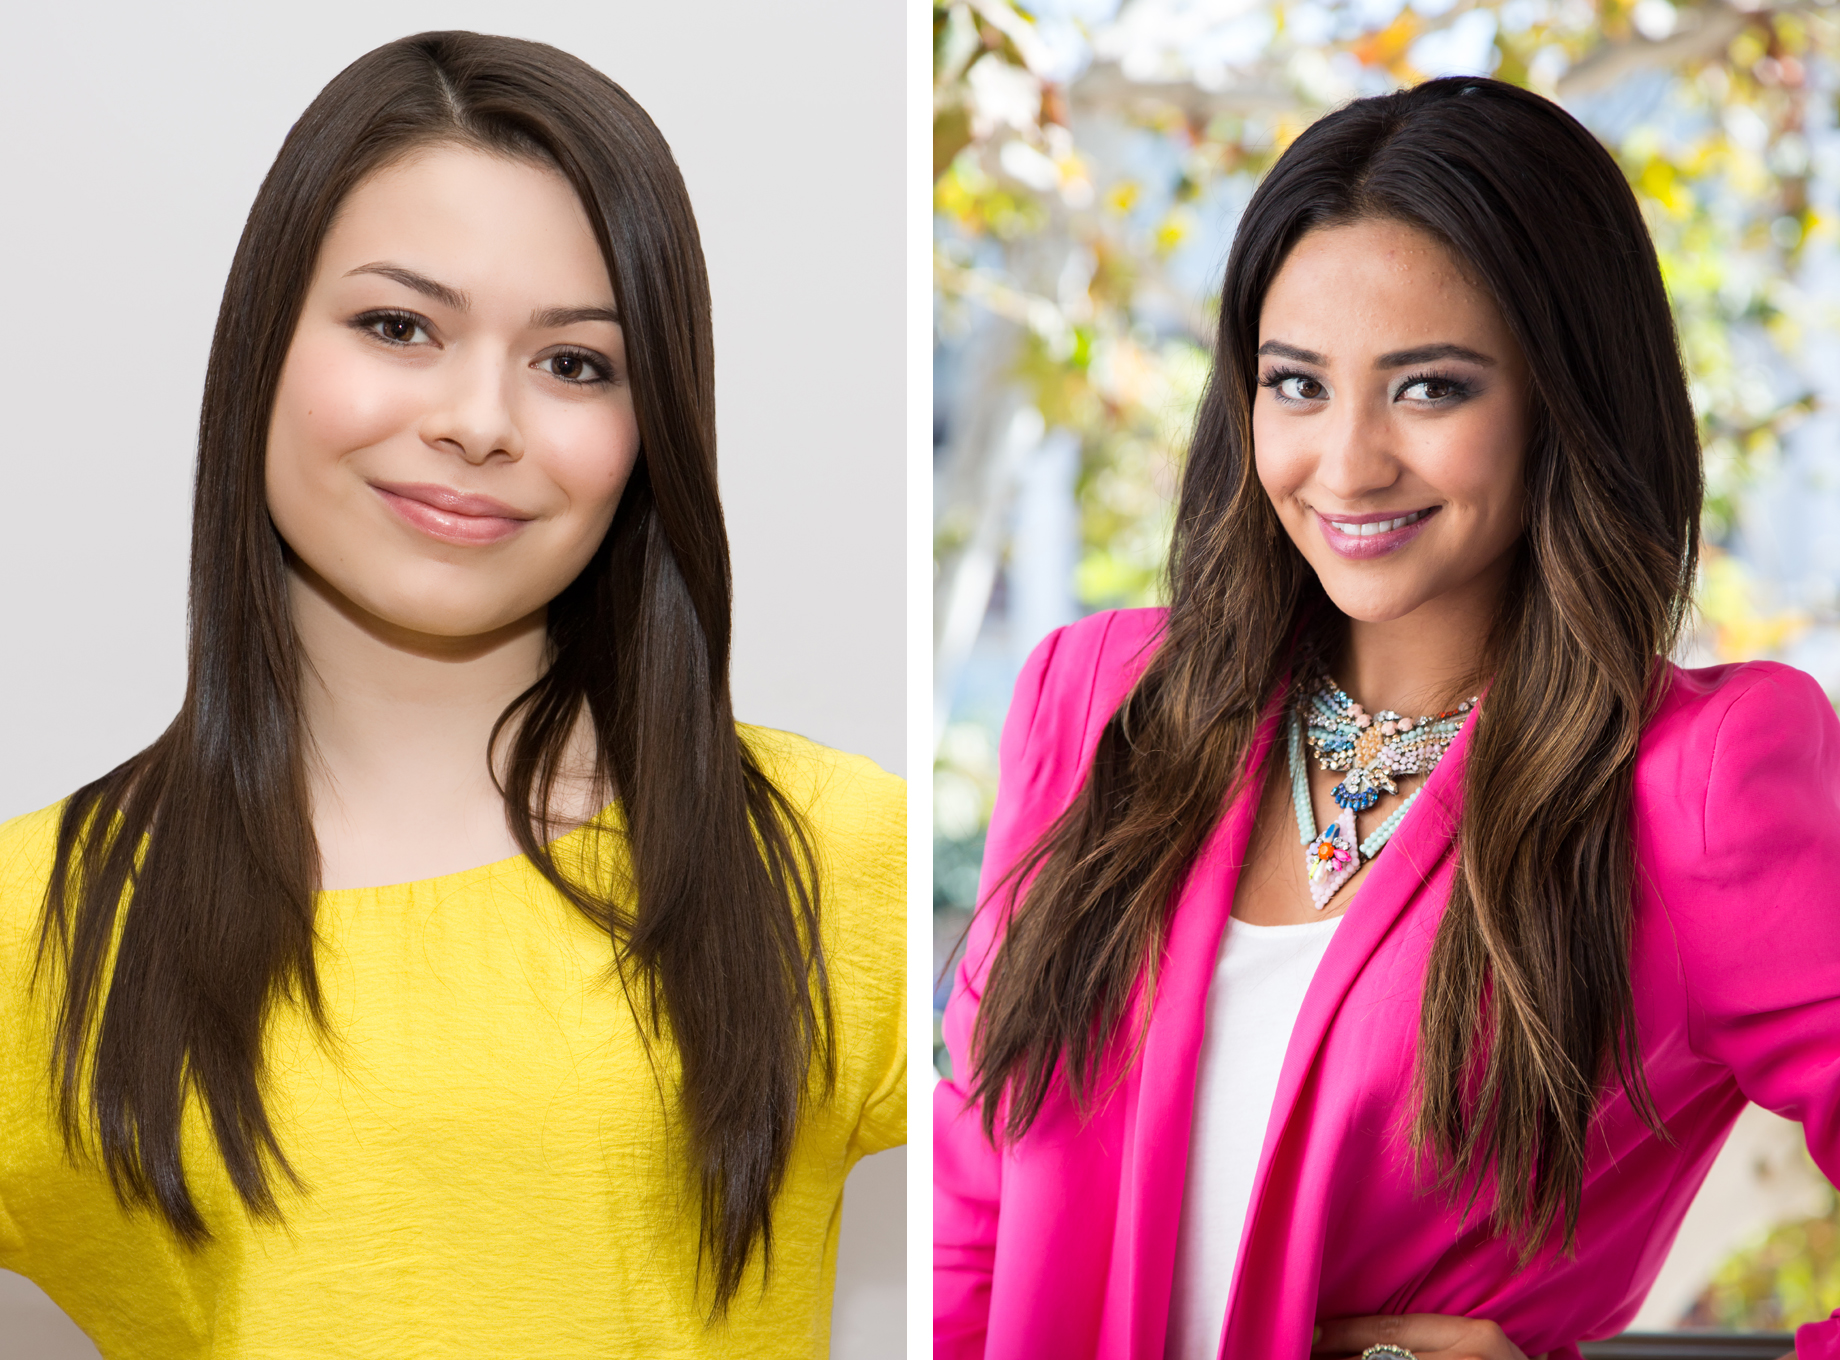 Miranda Cosgrove and Shay Mitchell